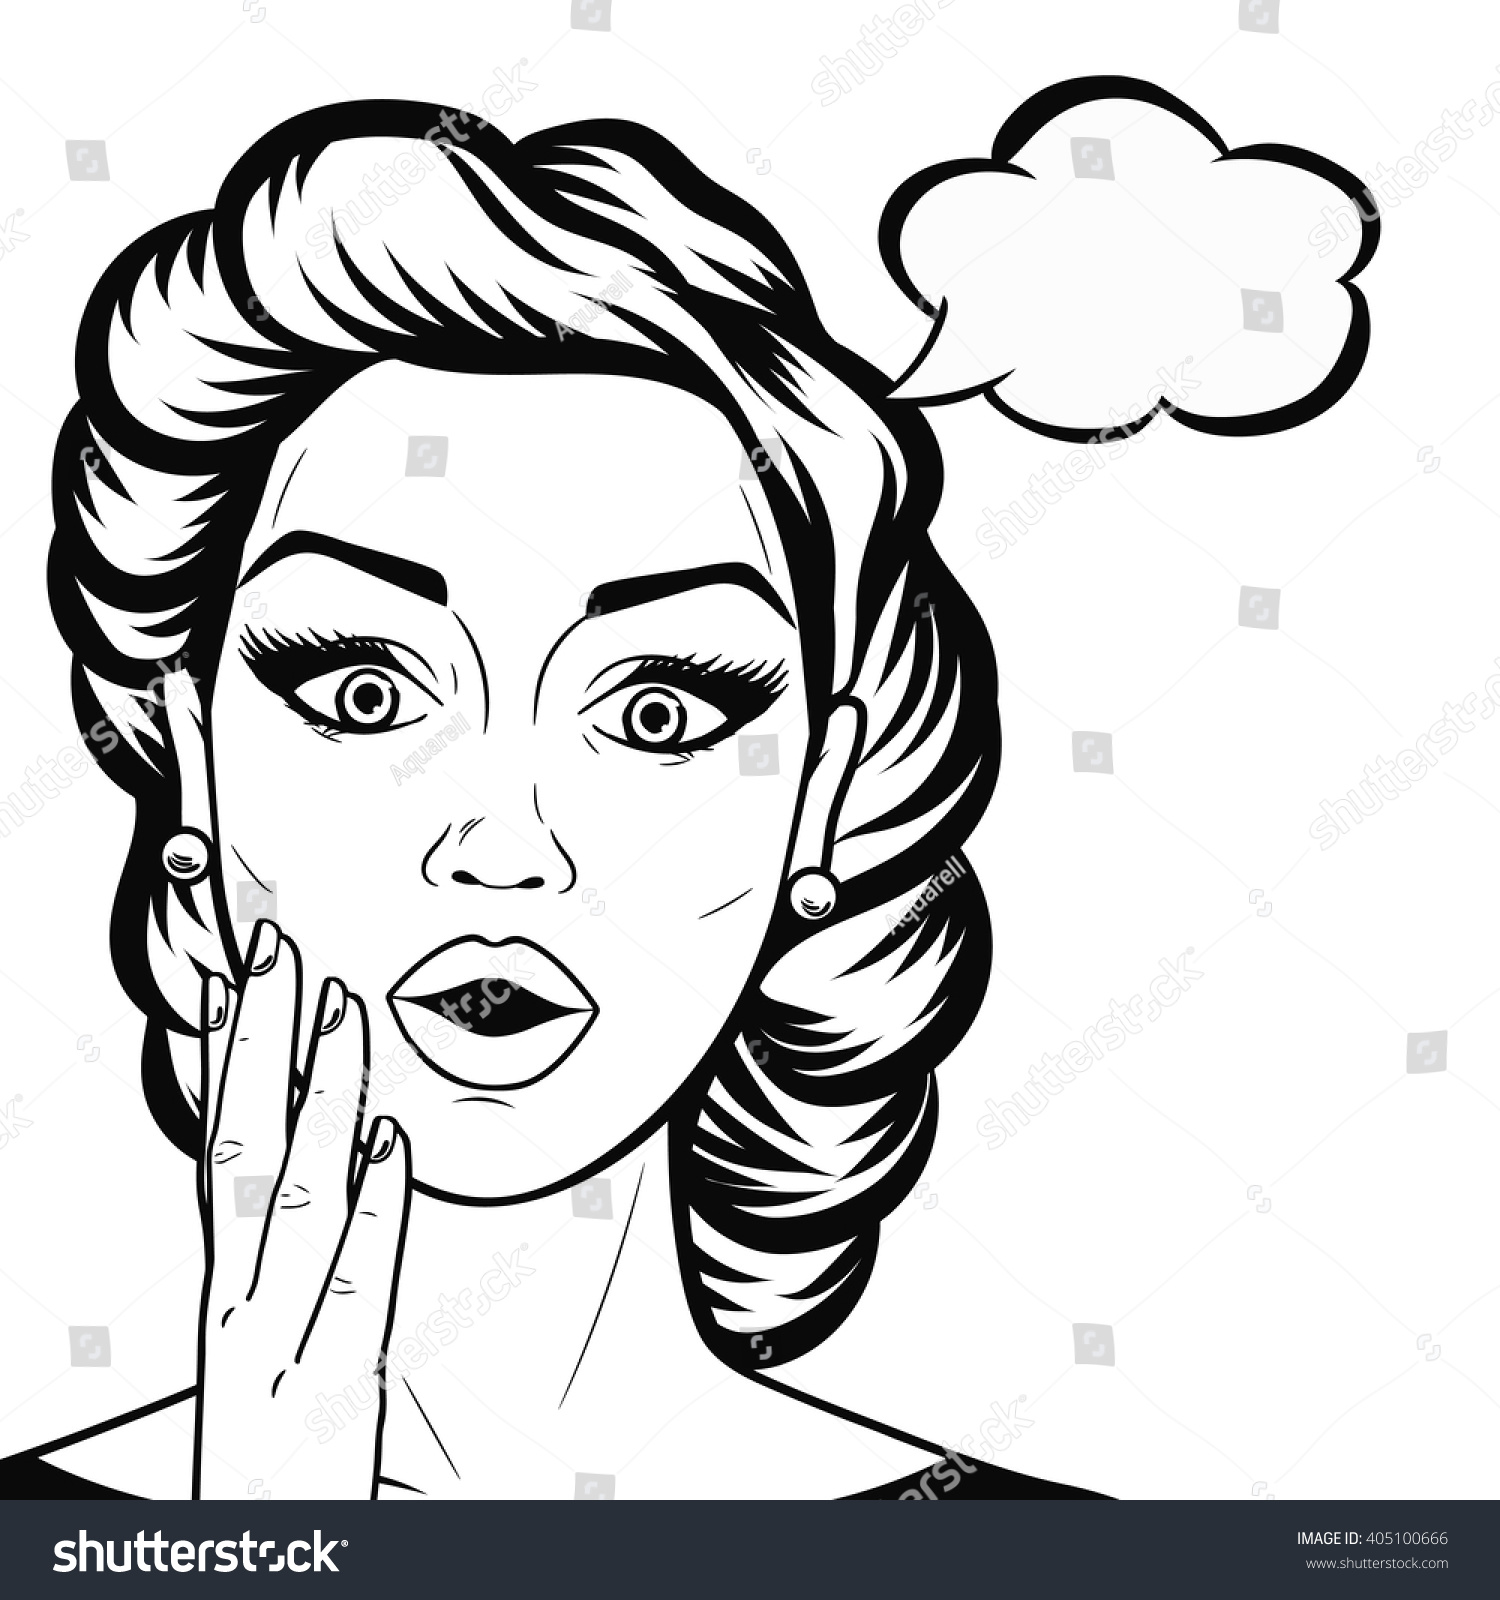 Woman Face Line Drawing Vector : Line art woman face open mouth stock vektor